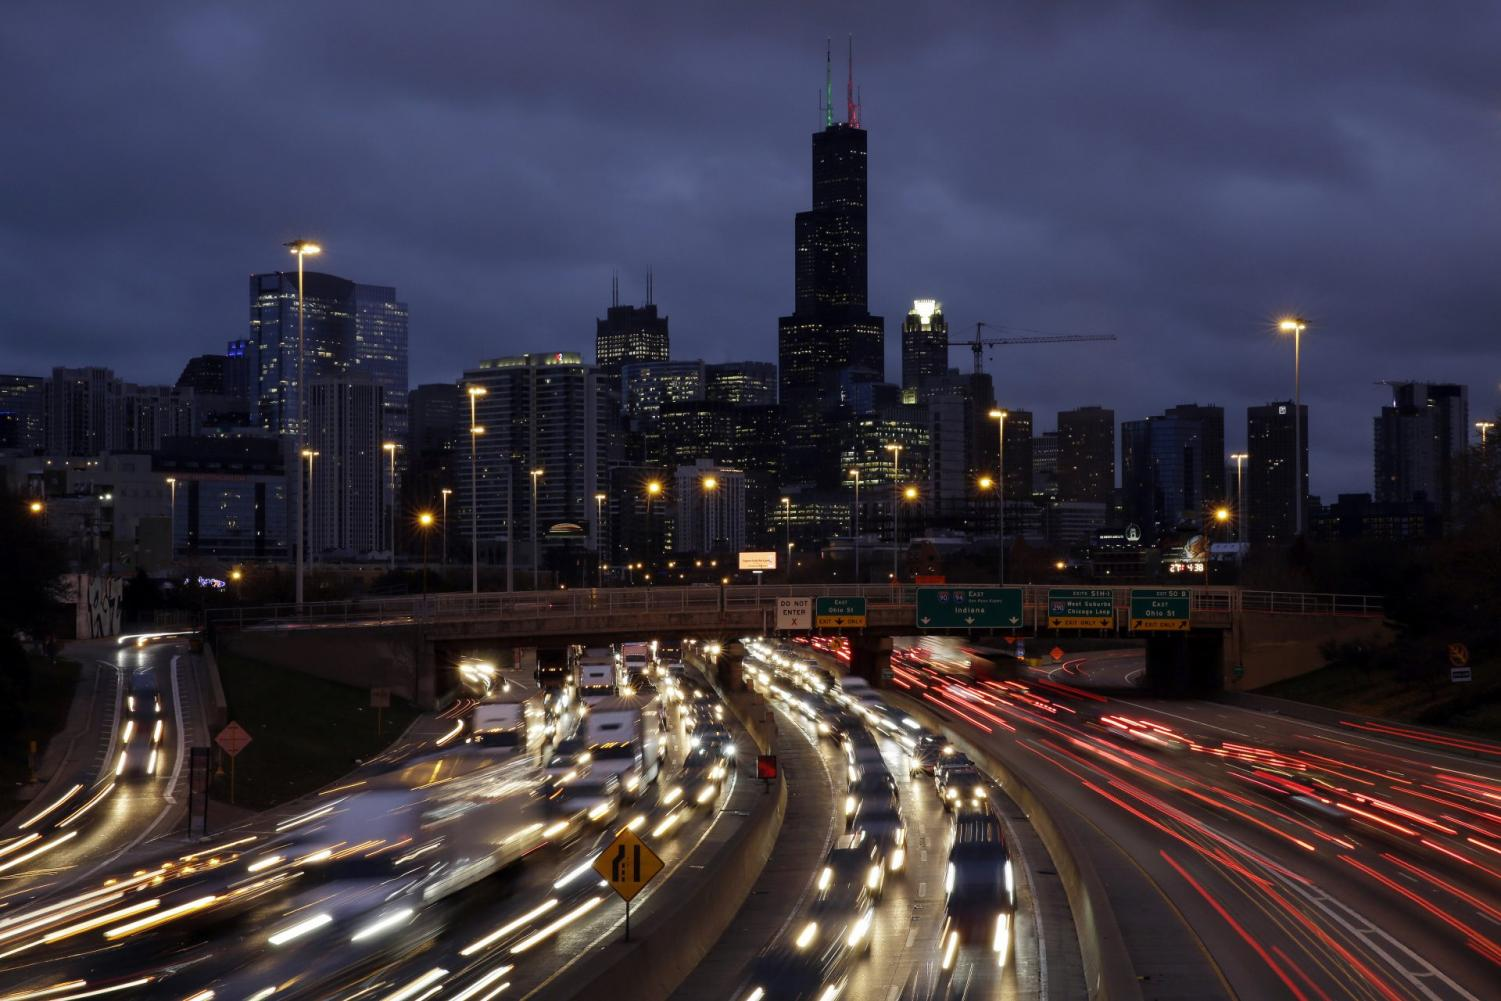 In this Nov. 21, 2018, file photo taken with a long exposure, traffic streaks across the John F. Kennedy Expressway at the start of the Thanksgiving holiday weekend in Chicago. The Transportation Security Administration said Wednesday, Nov. 13, 2019, that it expects to screen more than 26.8 million passengers from Nov. 22 through Dec. 2, a 4% increase over the comparable period last year.